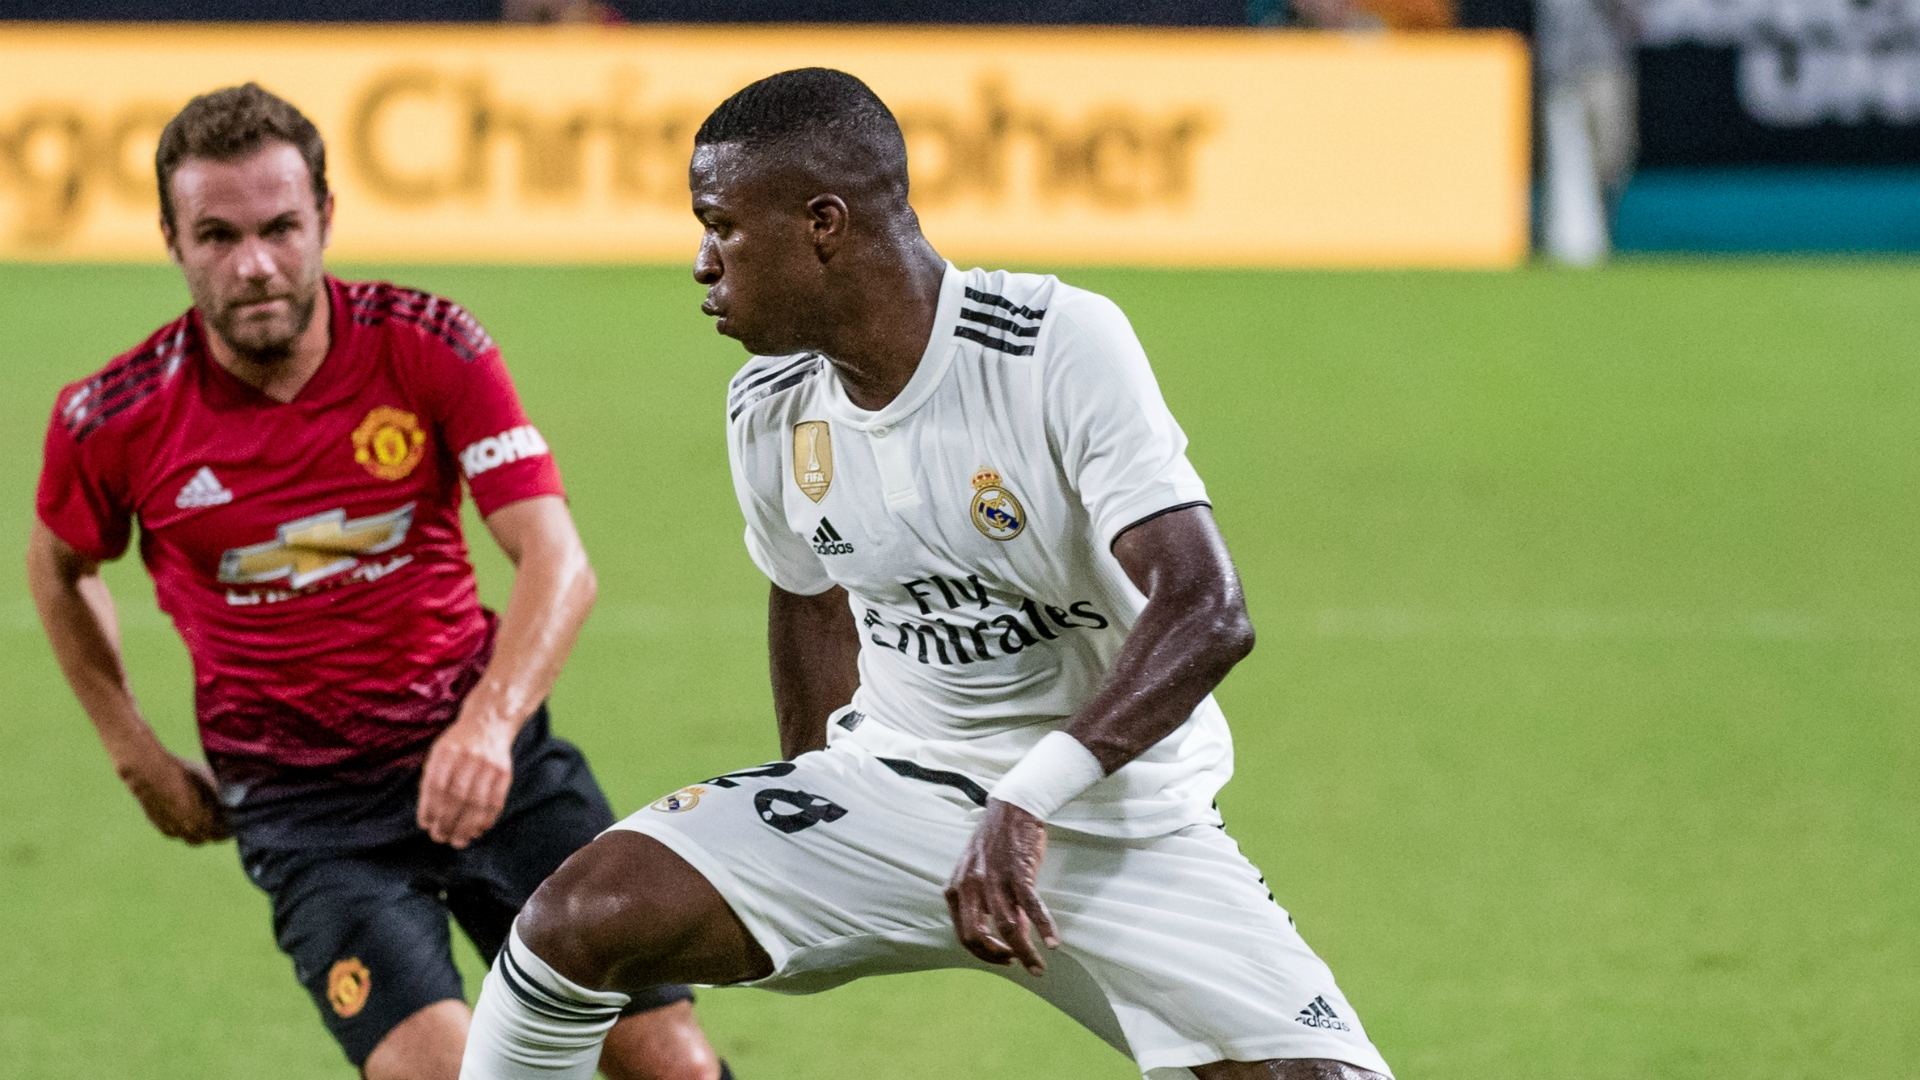 vinicius junior - in the International champions cup 2018 against Manchester United